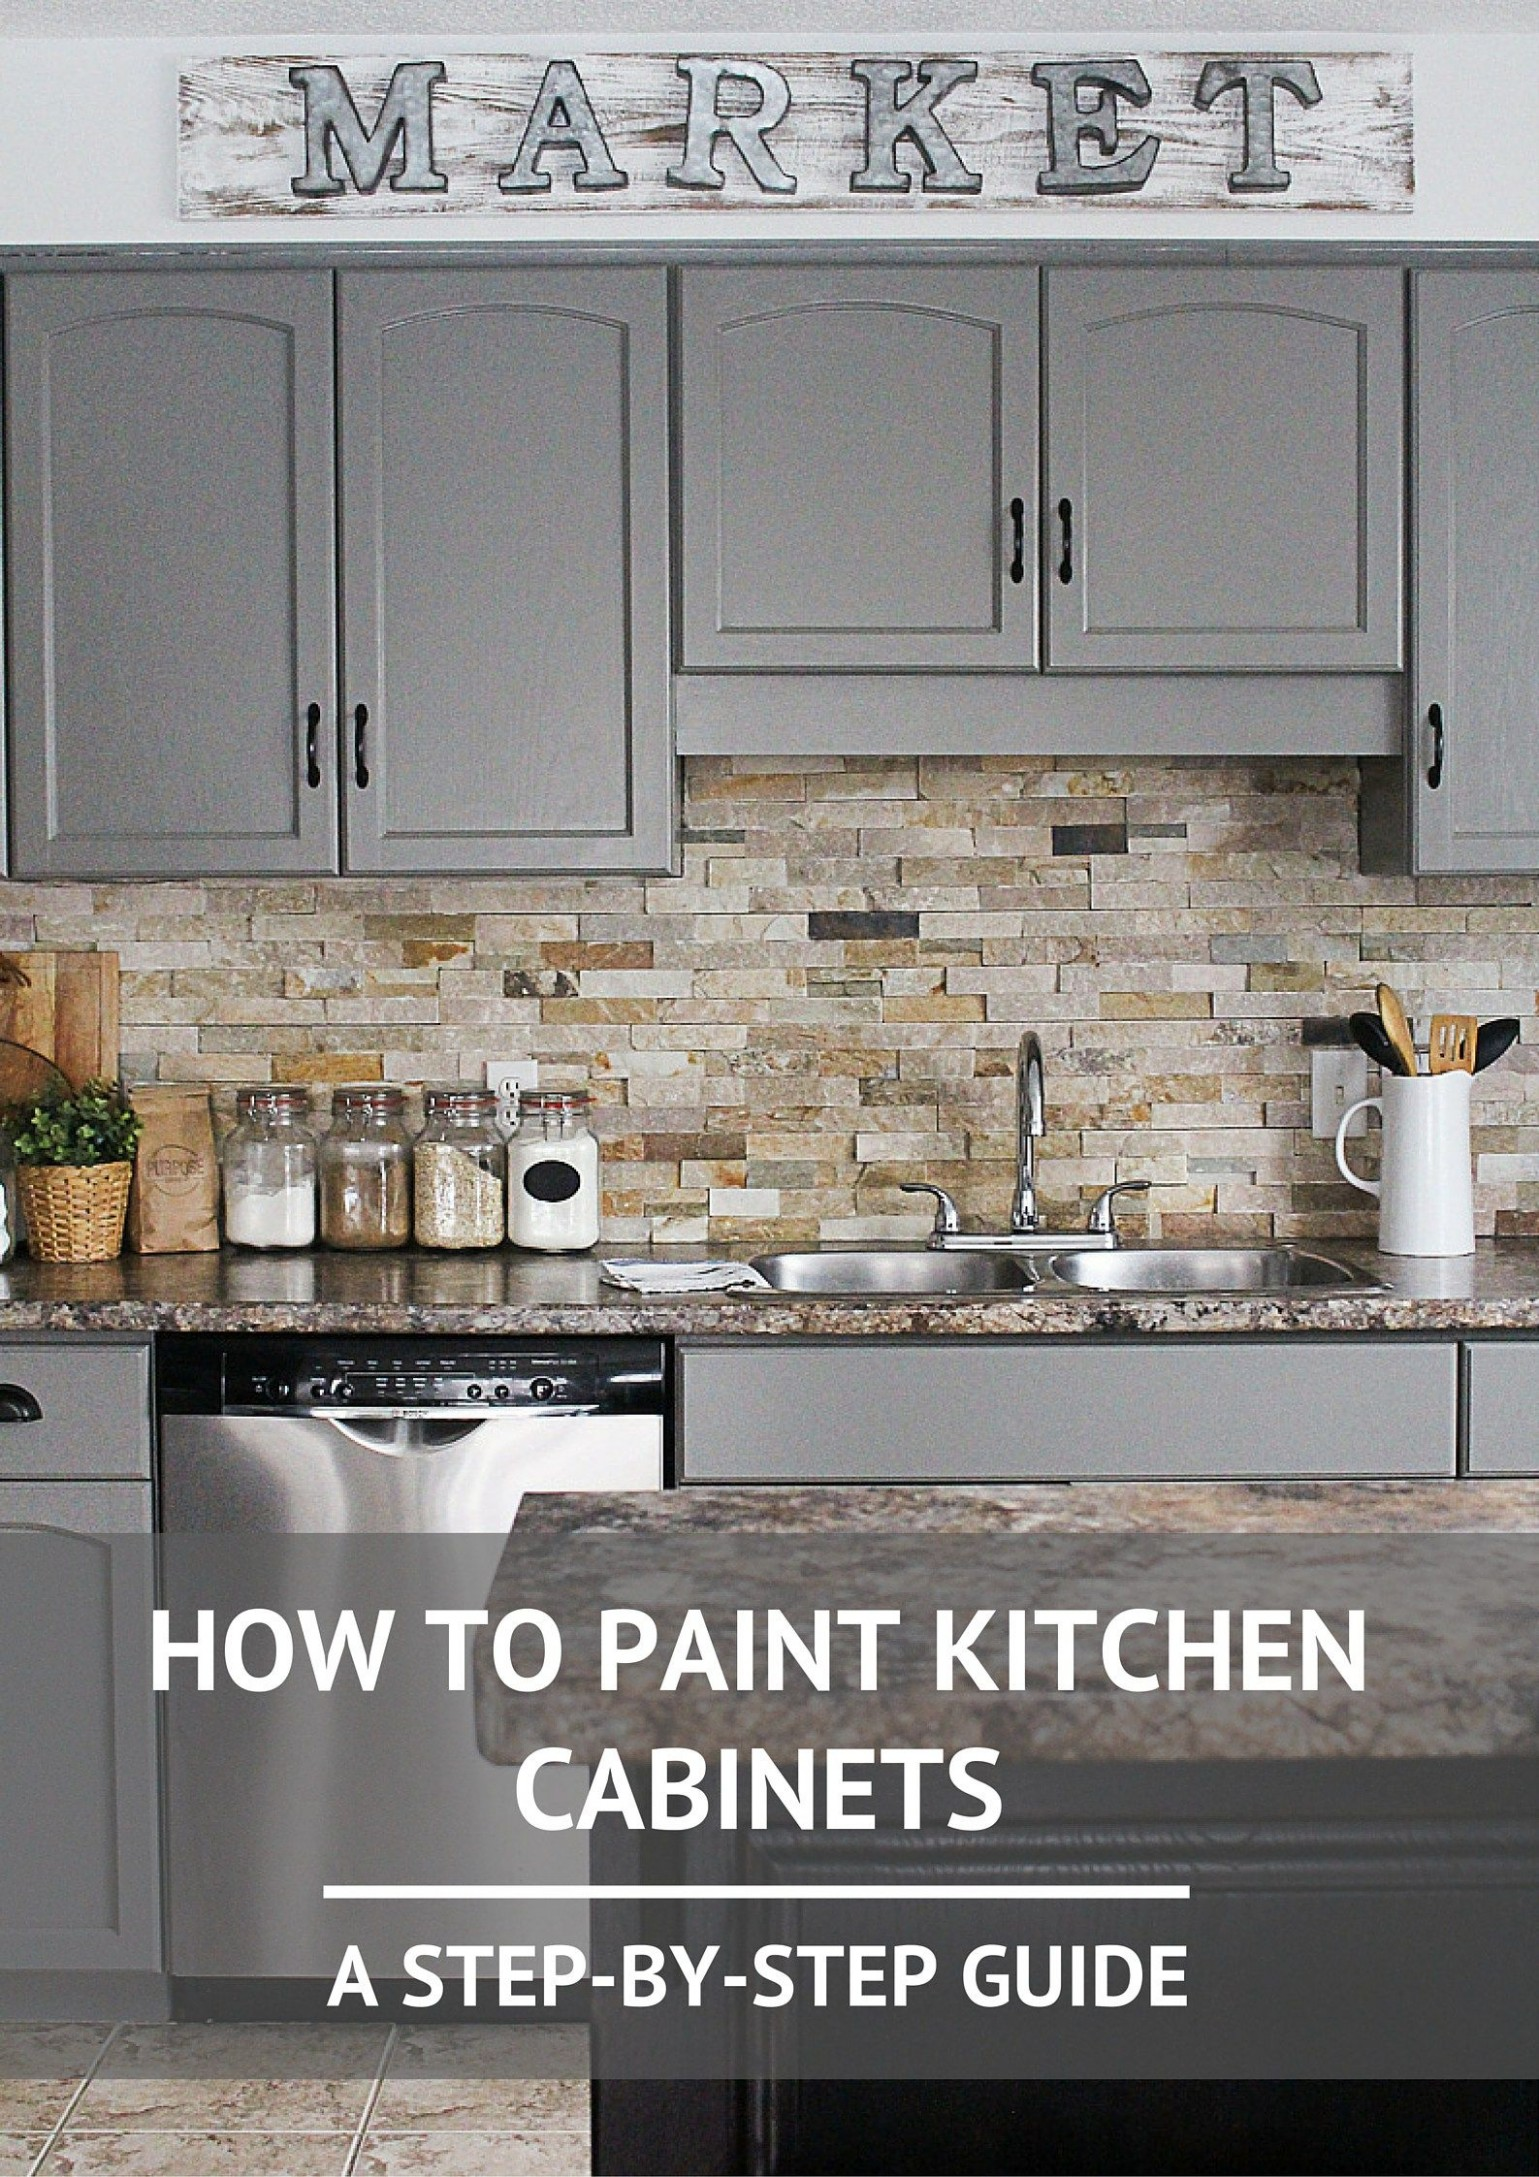 How to Paint Kitchen Cabinets- A Step-by-Step Guide 10  Painting  - Ideas For Painting Kitchen Cabinets And Walls